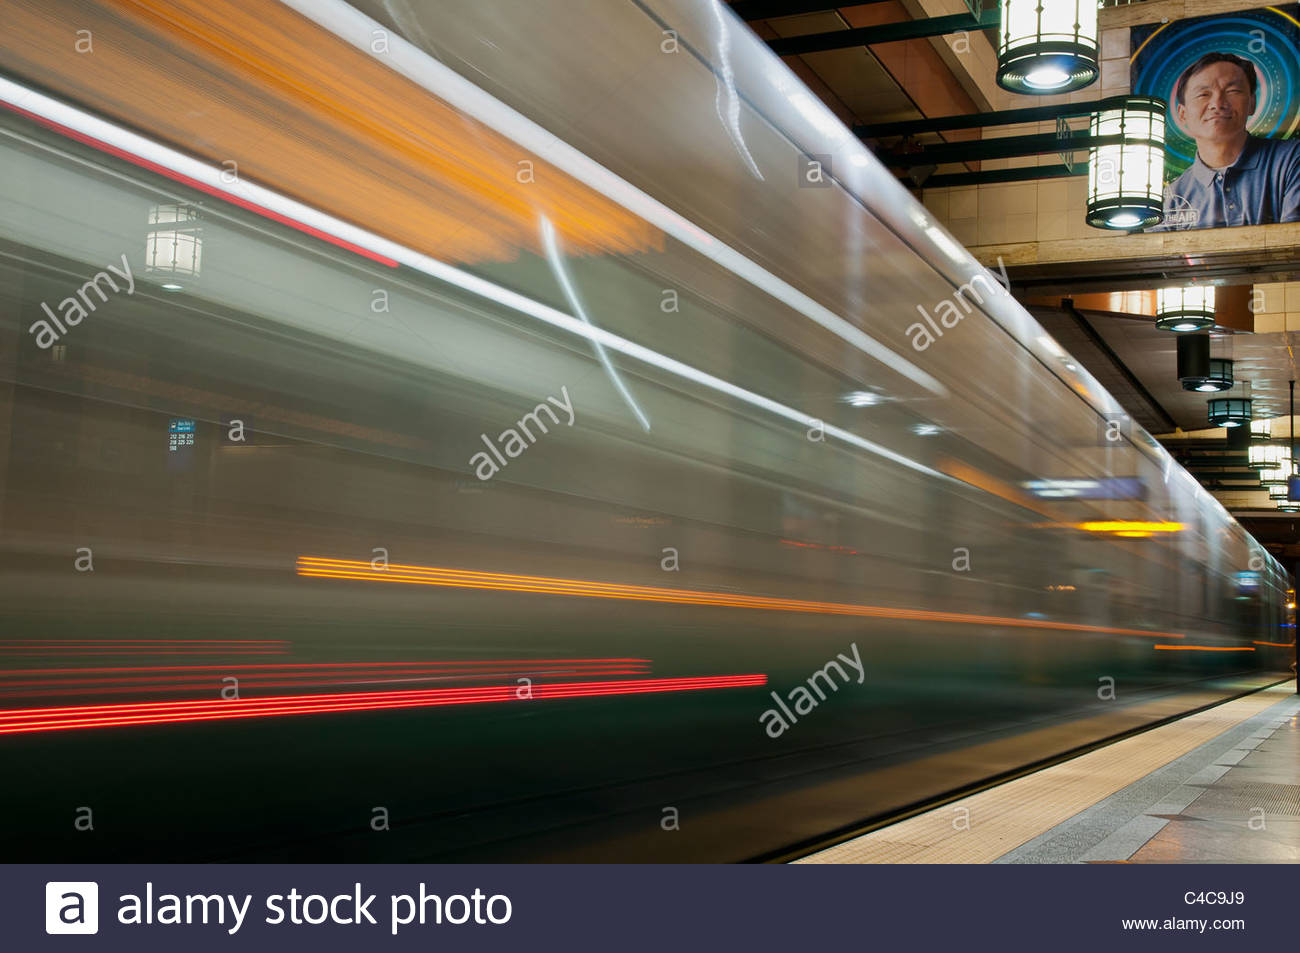 Westlake station, Metro Tunnel, Seattle, Washington, USA - Stock Image